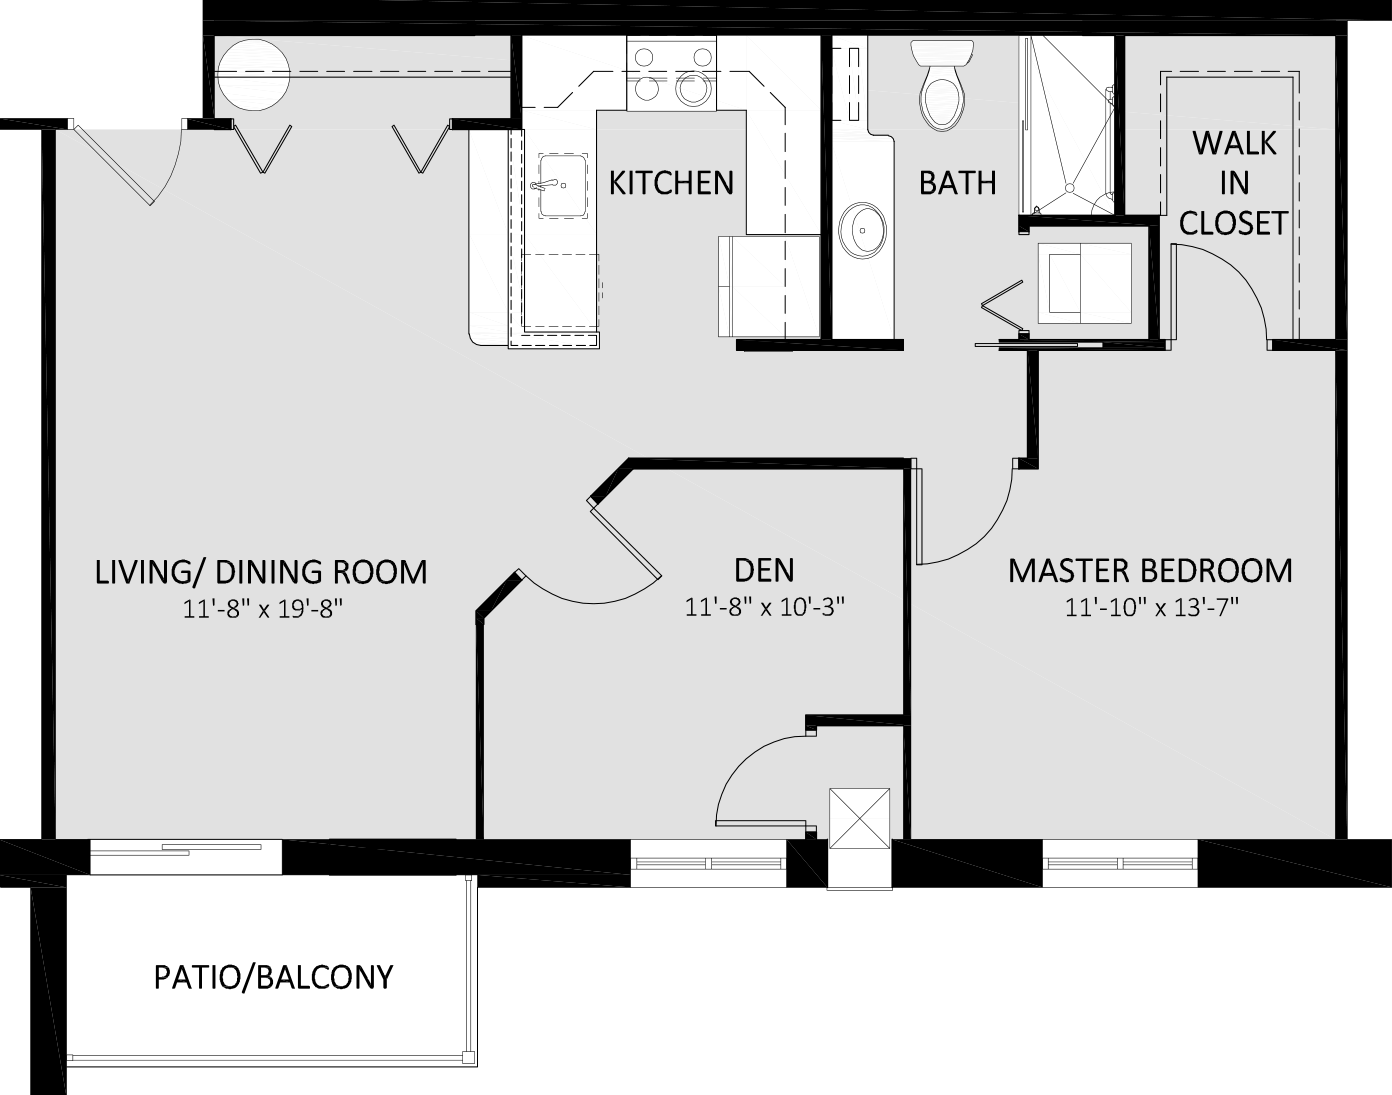 NFE Independence I Versatile One BEdroom-Den 778 Sq Ft.png